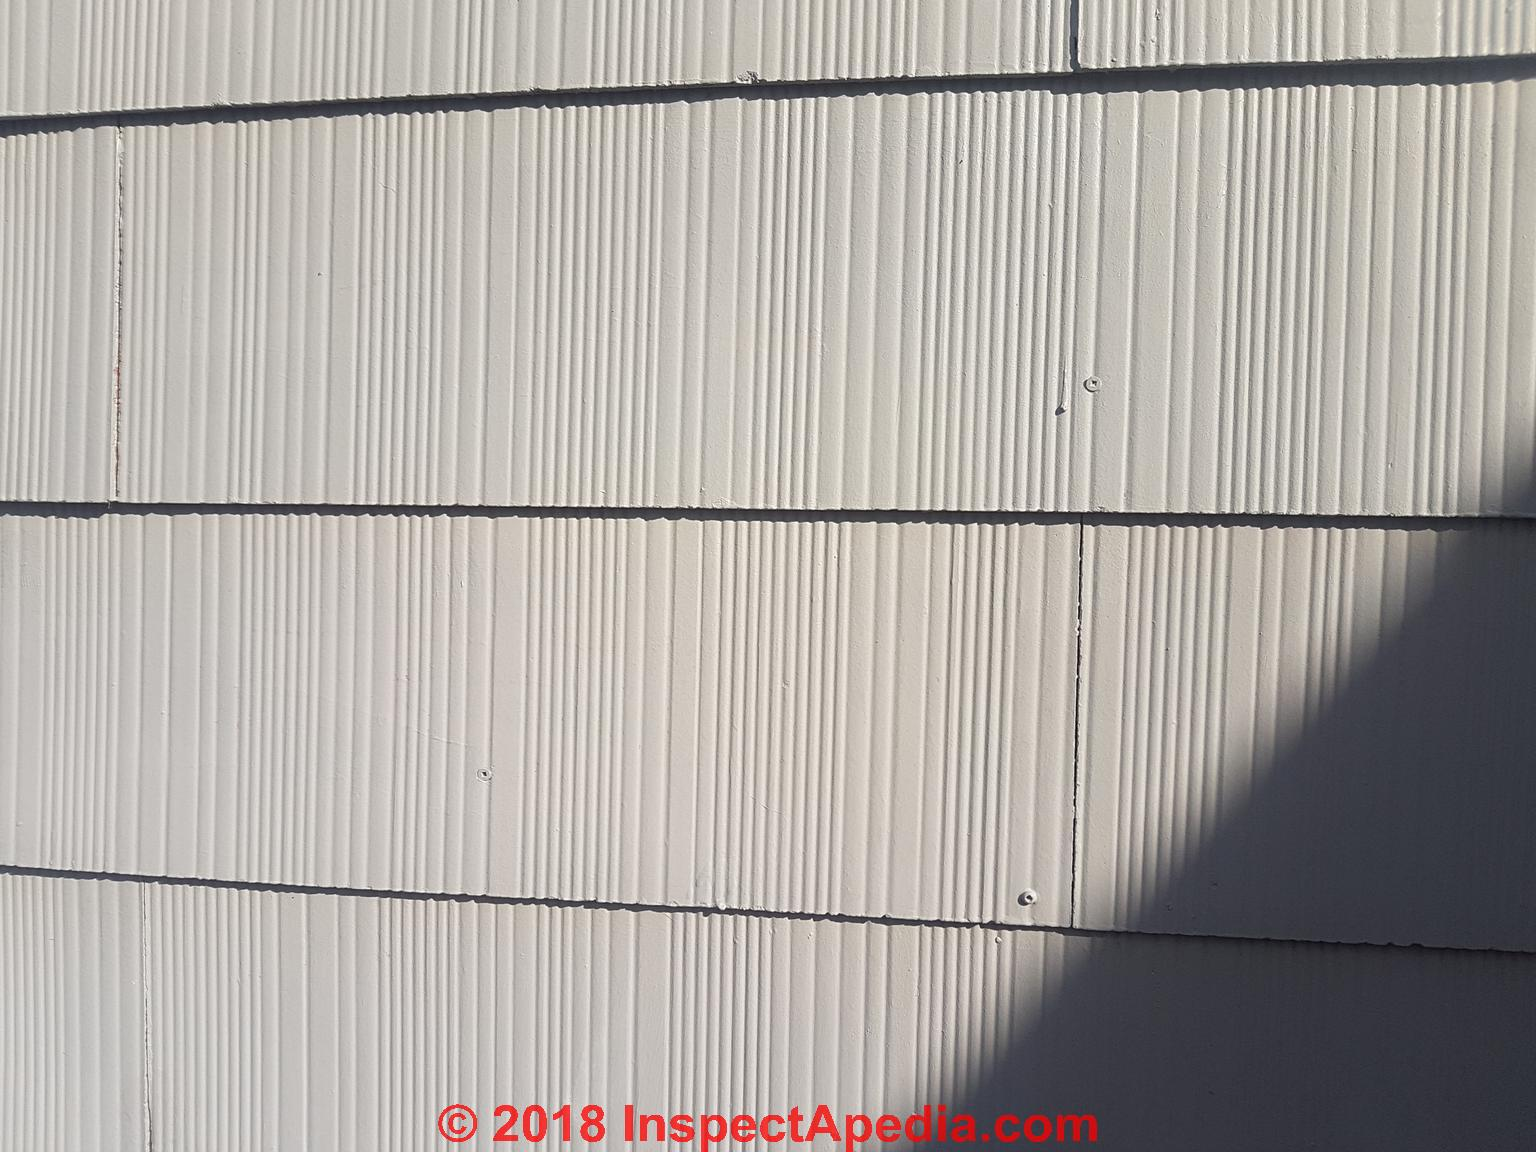 Asbestos Cement Shingle Siding Faqs Identification Cleaning Removal Disposal